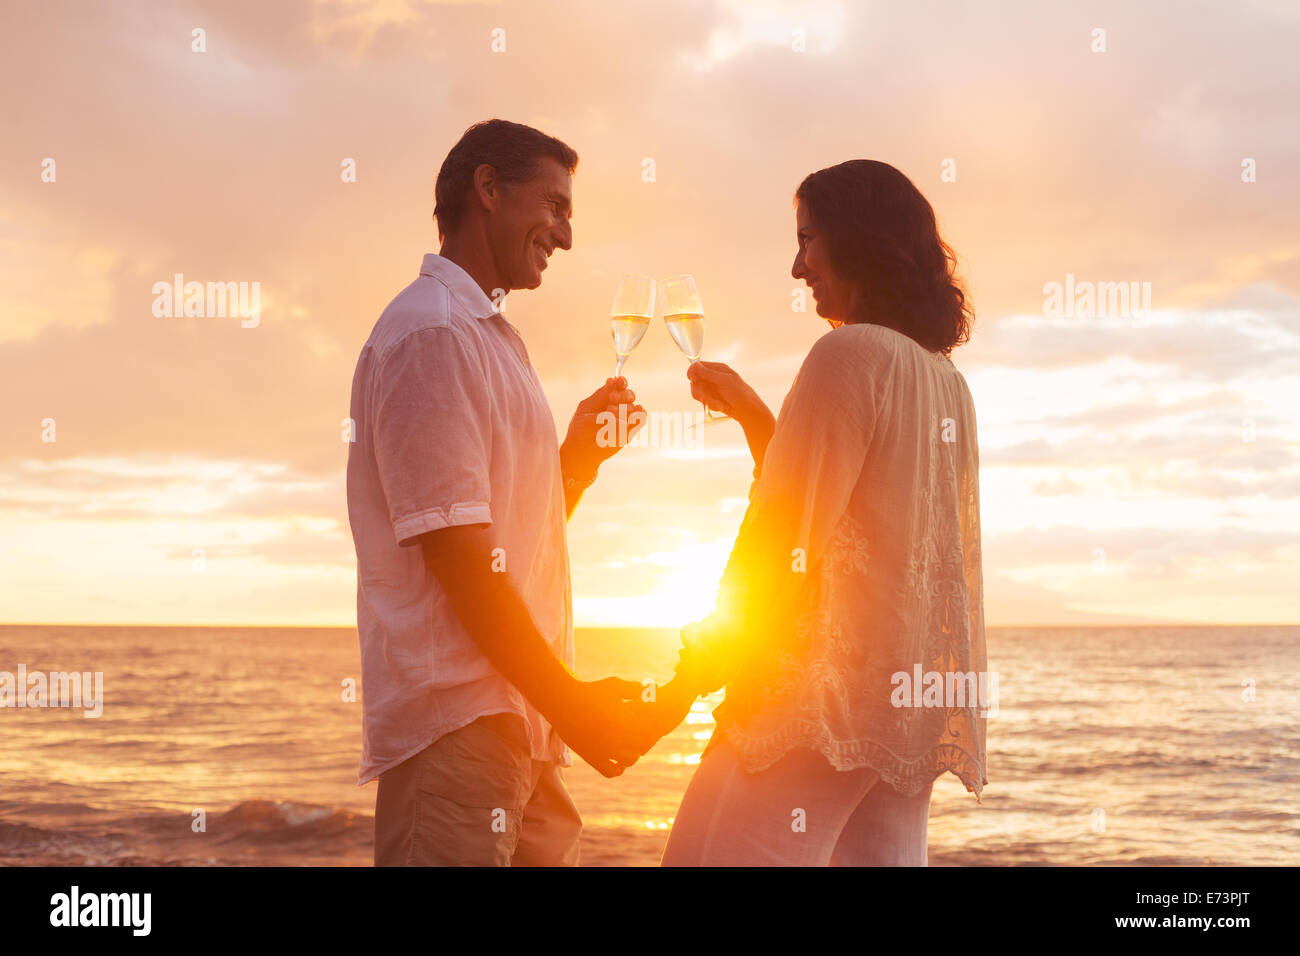 Happy Romantic Couple Enjoying Glass of Champagne at Sunset on the Beach. Vacation Travel Retirement Anniversary - Stock Image